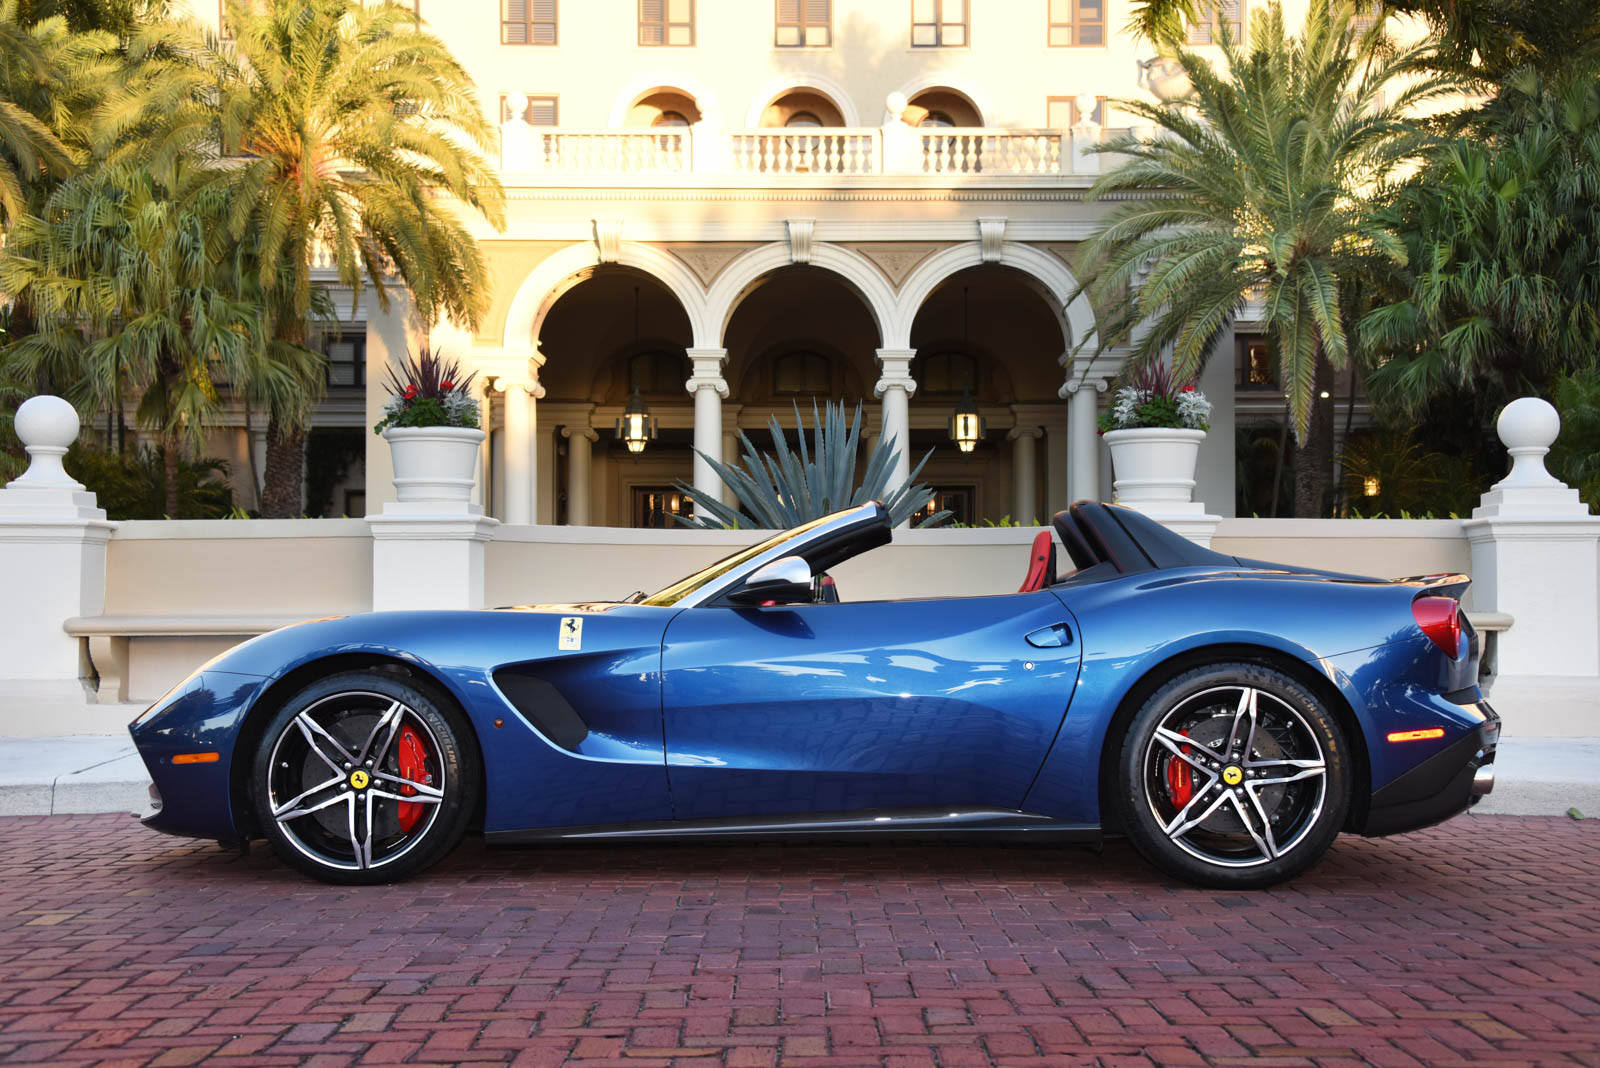 Ferrari California T >> First Ferrari F60 America Is Delivered to Its Owner - autoevolution